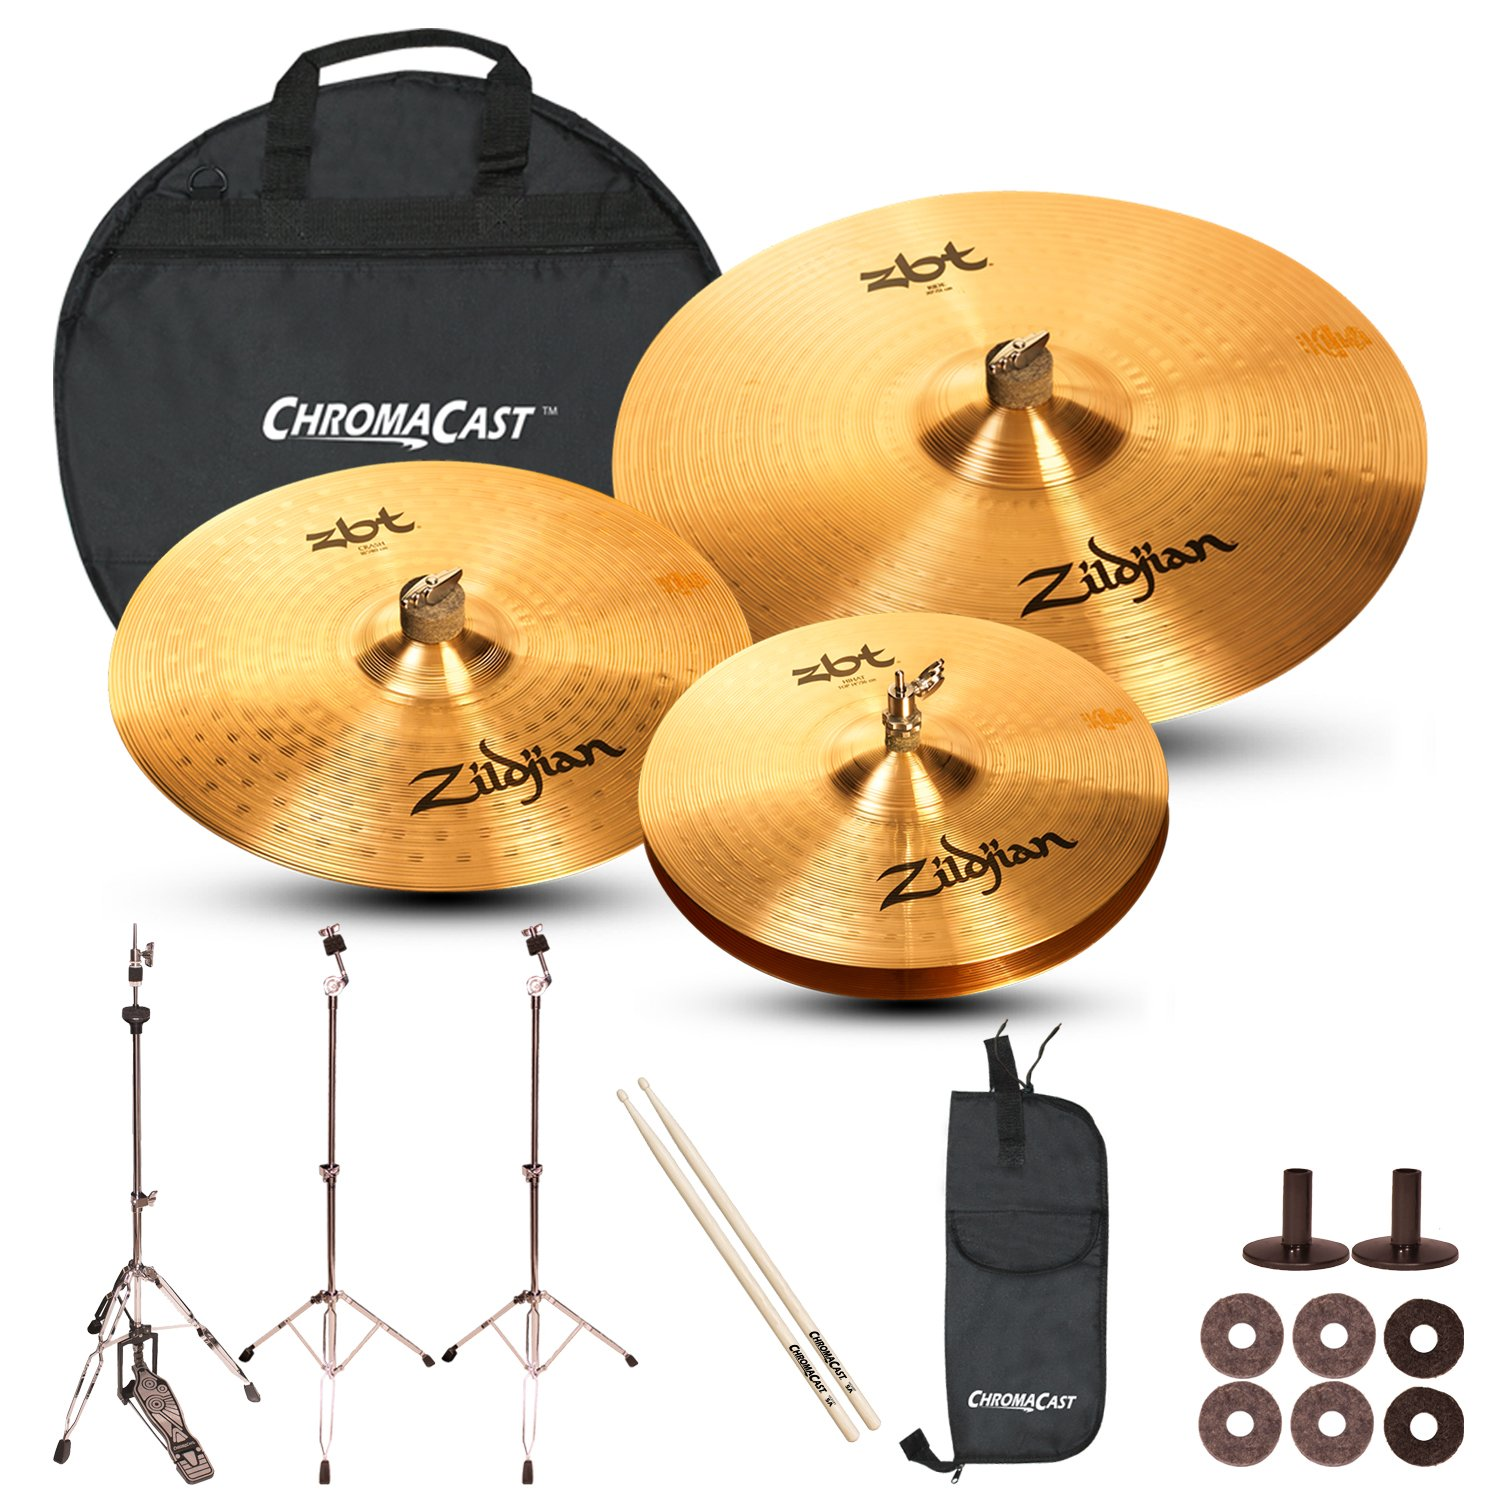 Zildjian Complete Cymbal Set with Hardware & Accessories JF-Z-ZBT-COMPLETE-HRDW